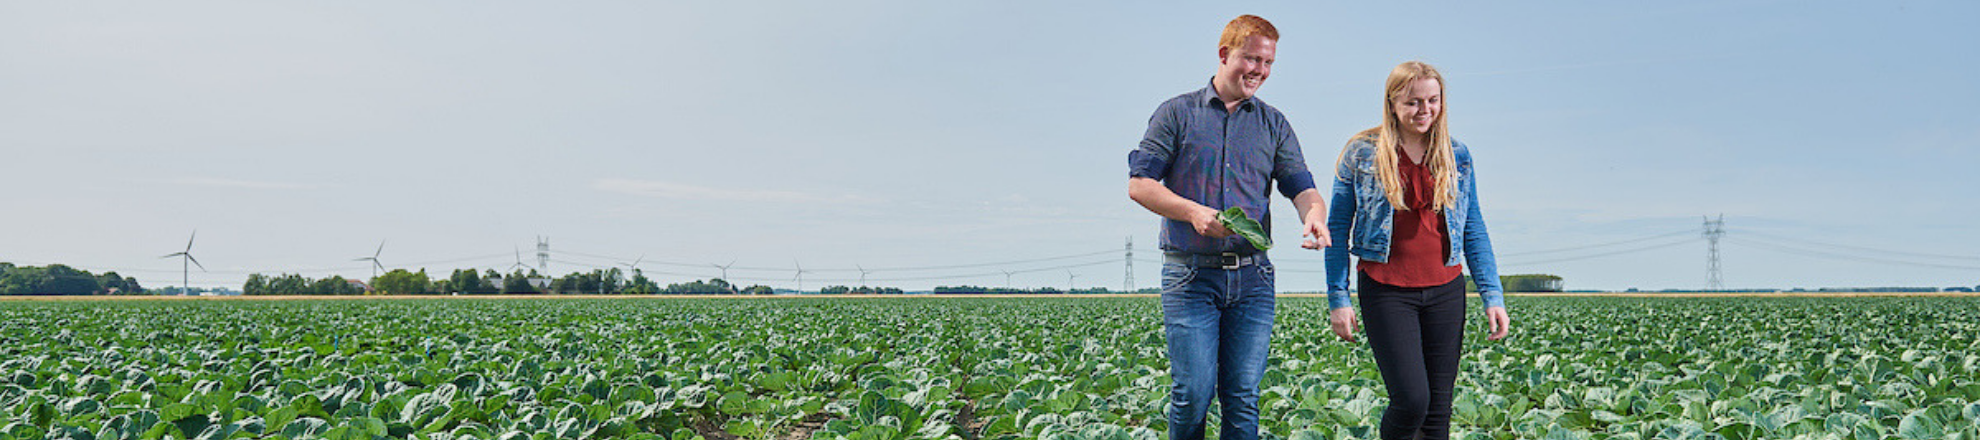 Arable farming students from Aeres University of Applied Sciences in field with cabbage